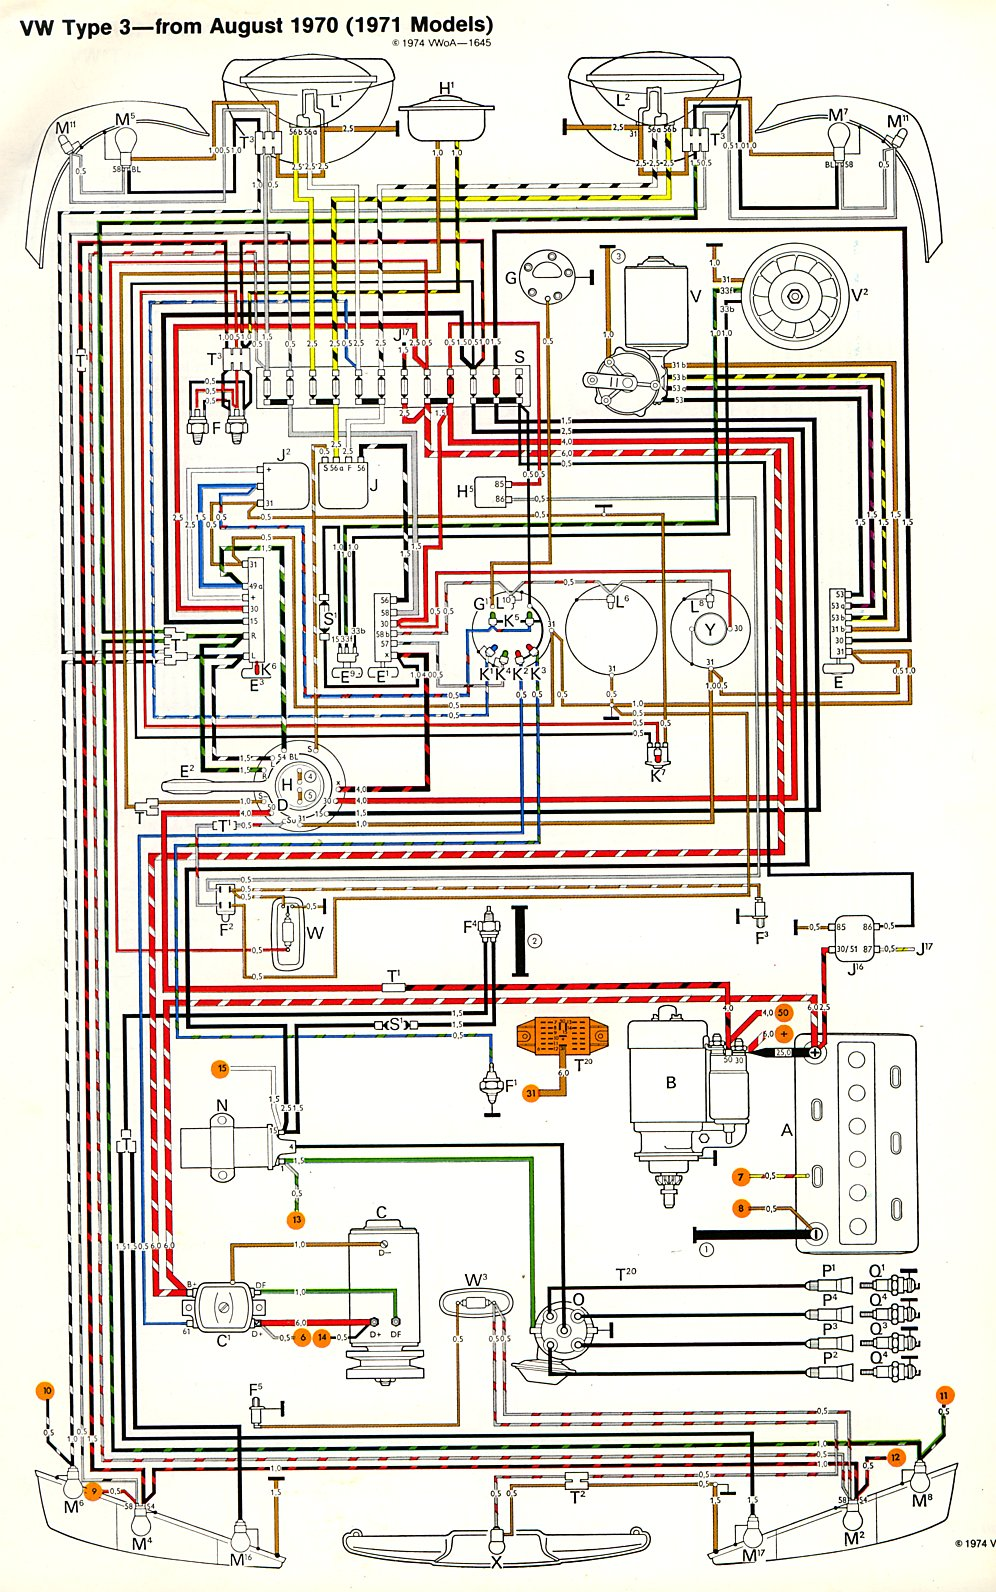 Bug likewise Hqdefault furthermore Hqdefault together with Type likewise Volkswagen Transporter. on 1971 vw beetle wiring diagram